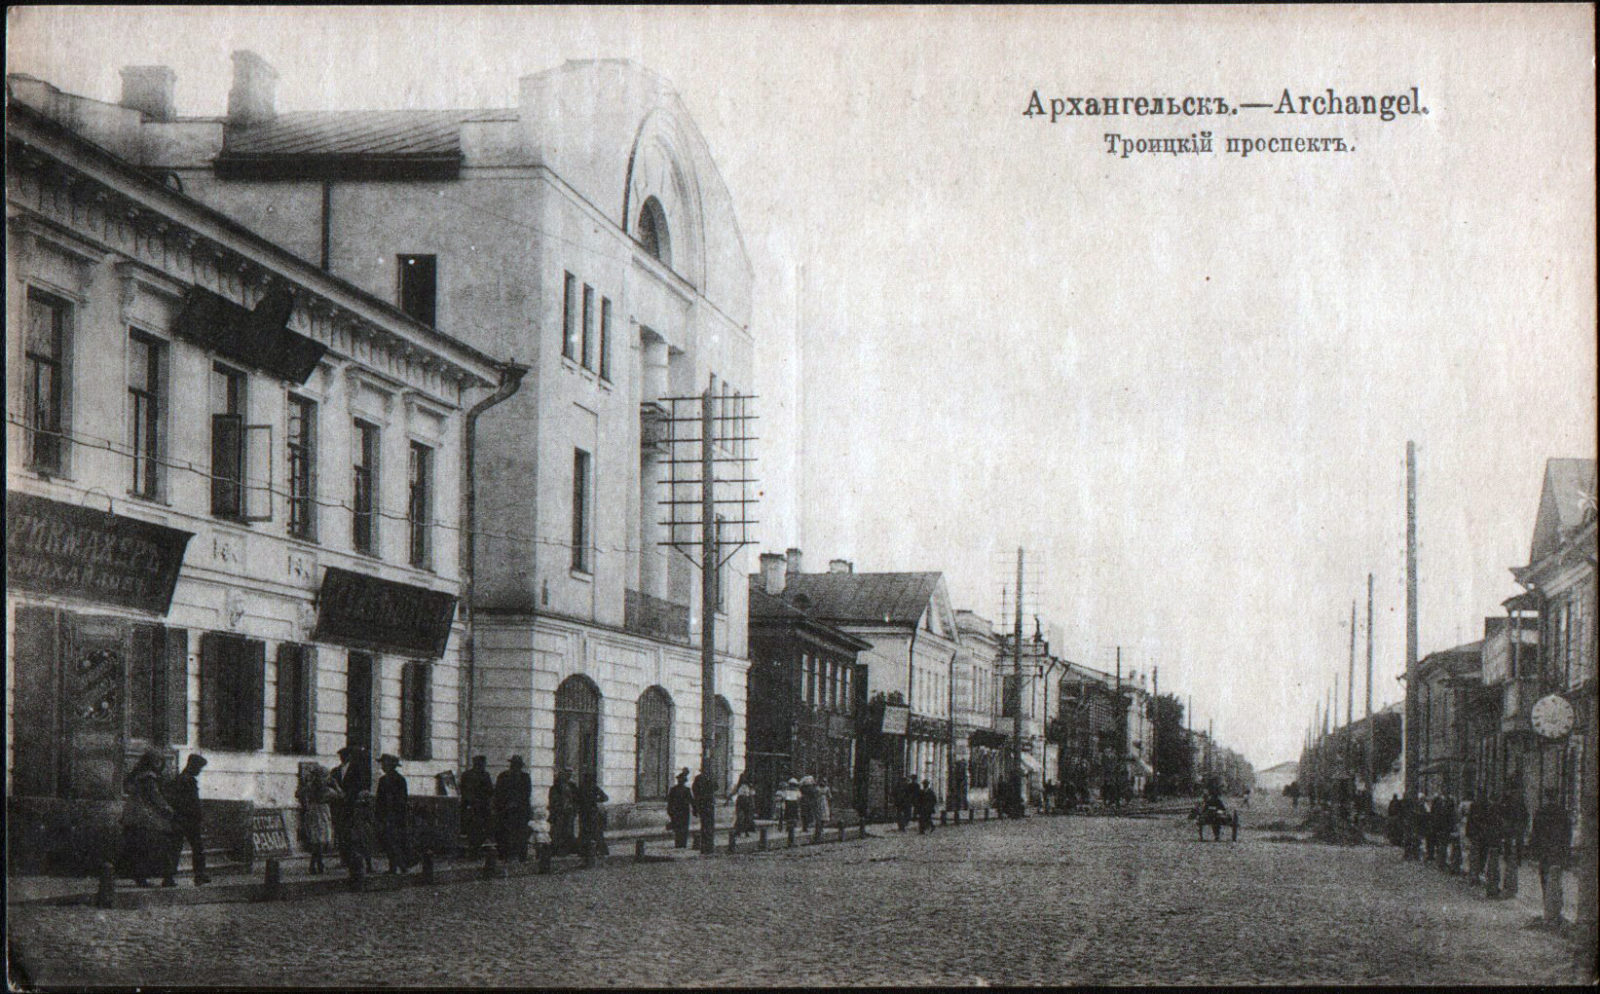 Central Arkhangelsk (Archangel)